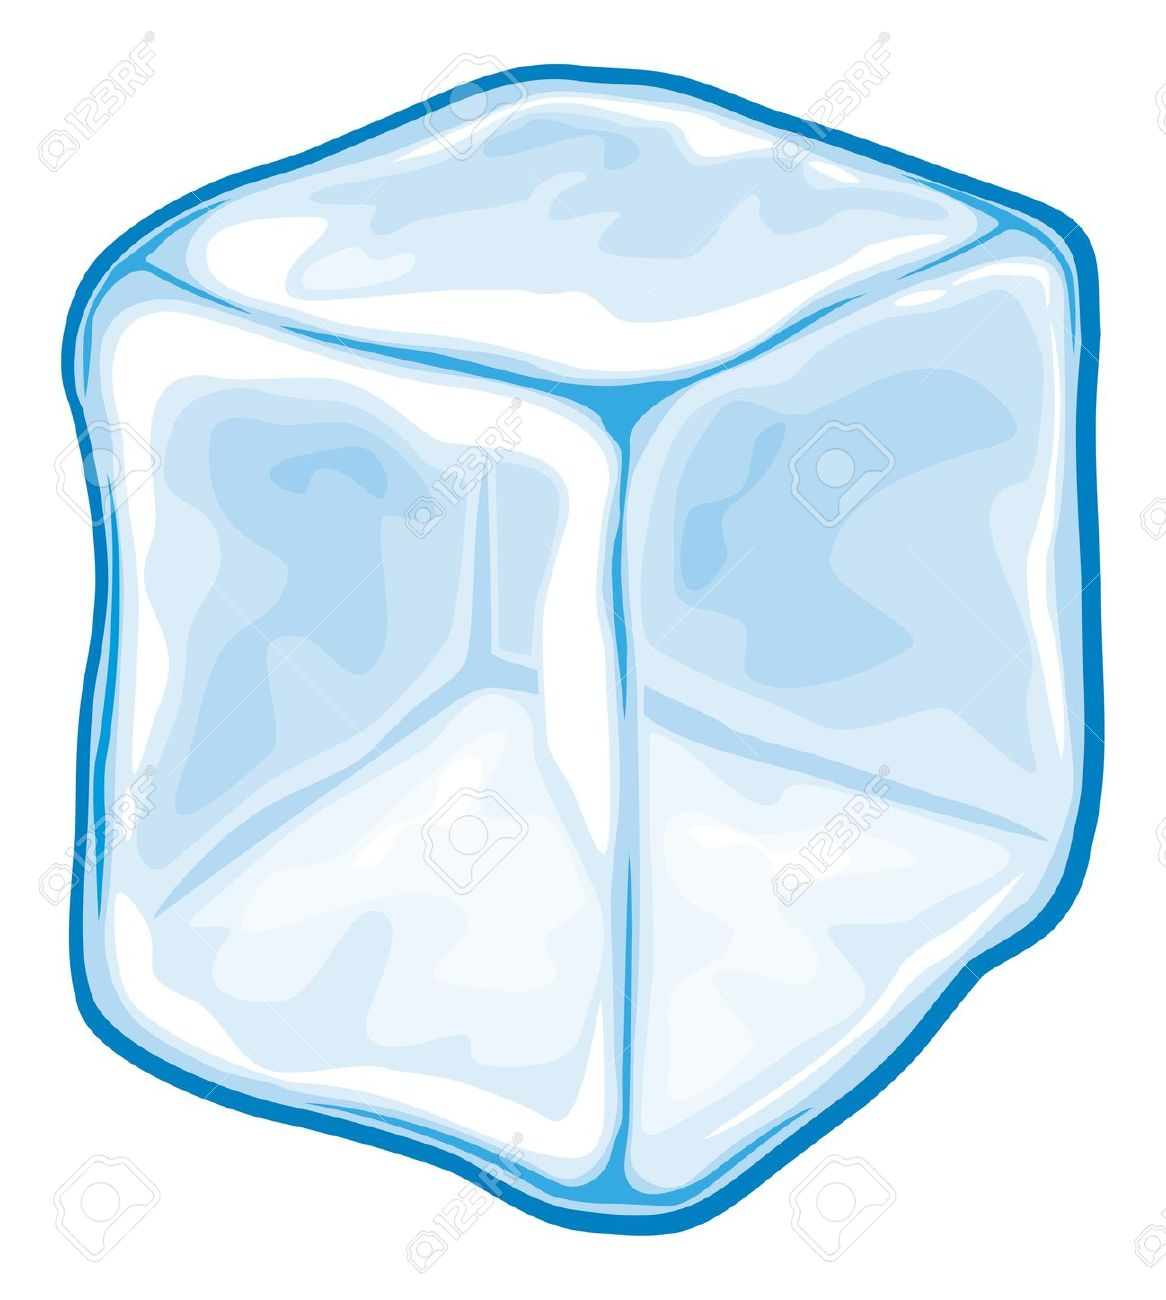 Block of ice clipart picture library library Block Of Ice Clipart Clip art of Ice Clipart #8324 — Clipartwork picture library library